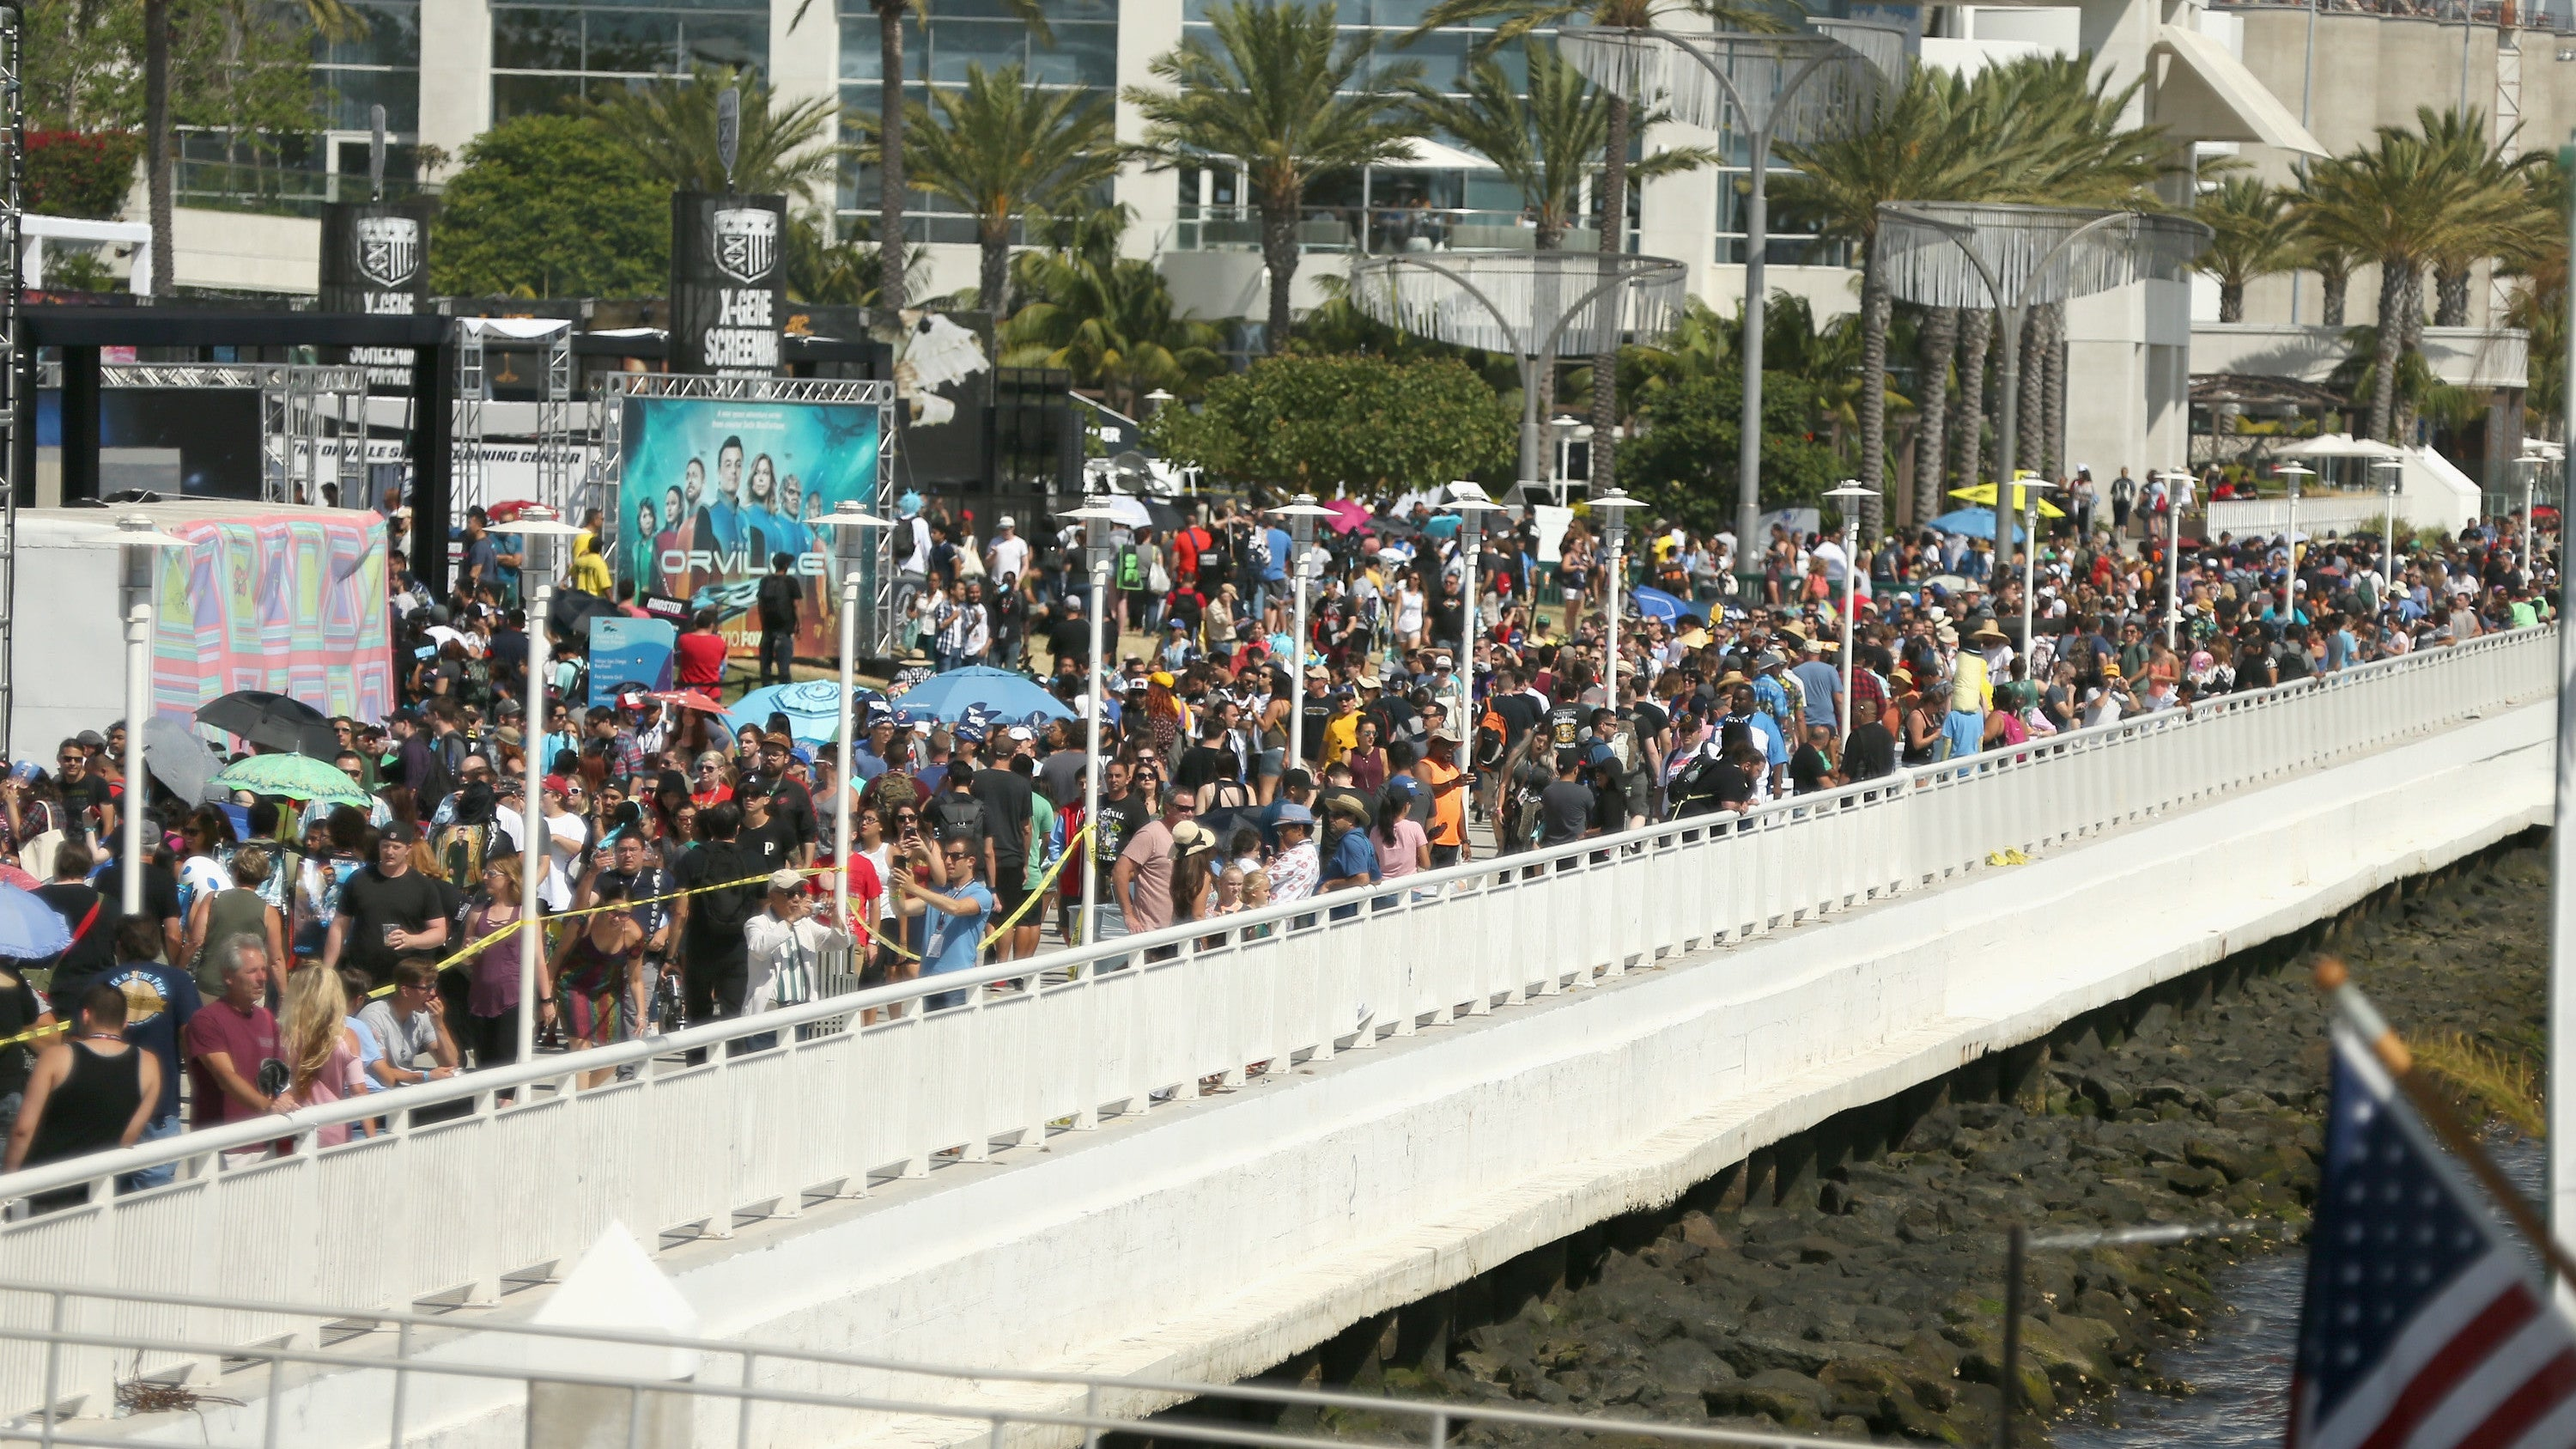 San Diego Comic-Con's Organisers Are Confident That Going Digital Will Work, But Will It?